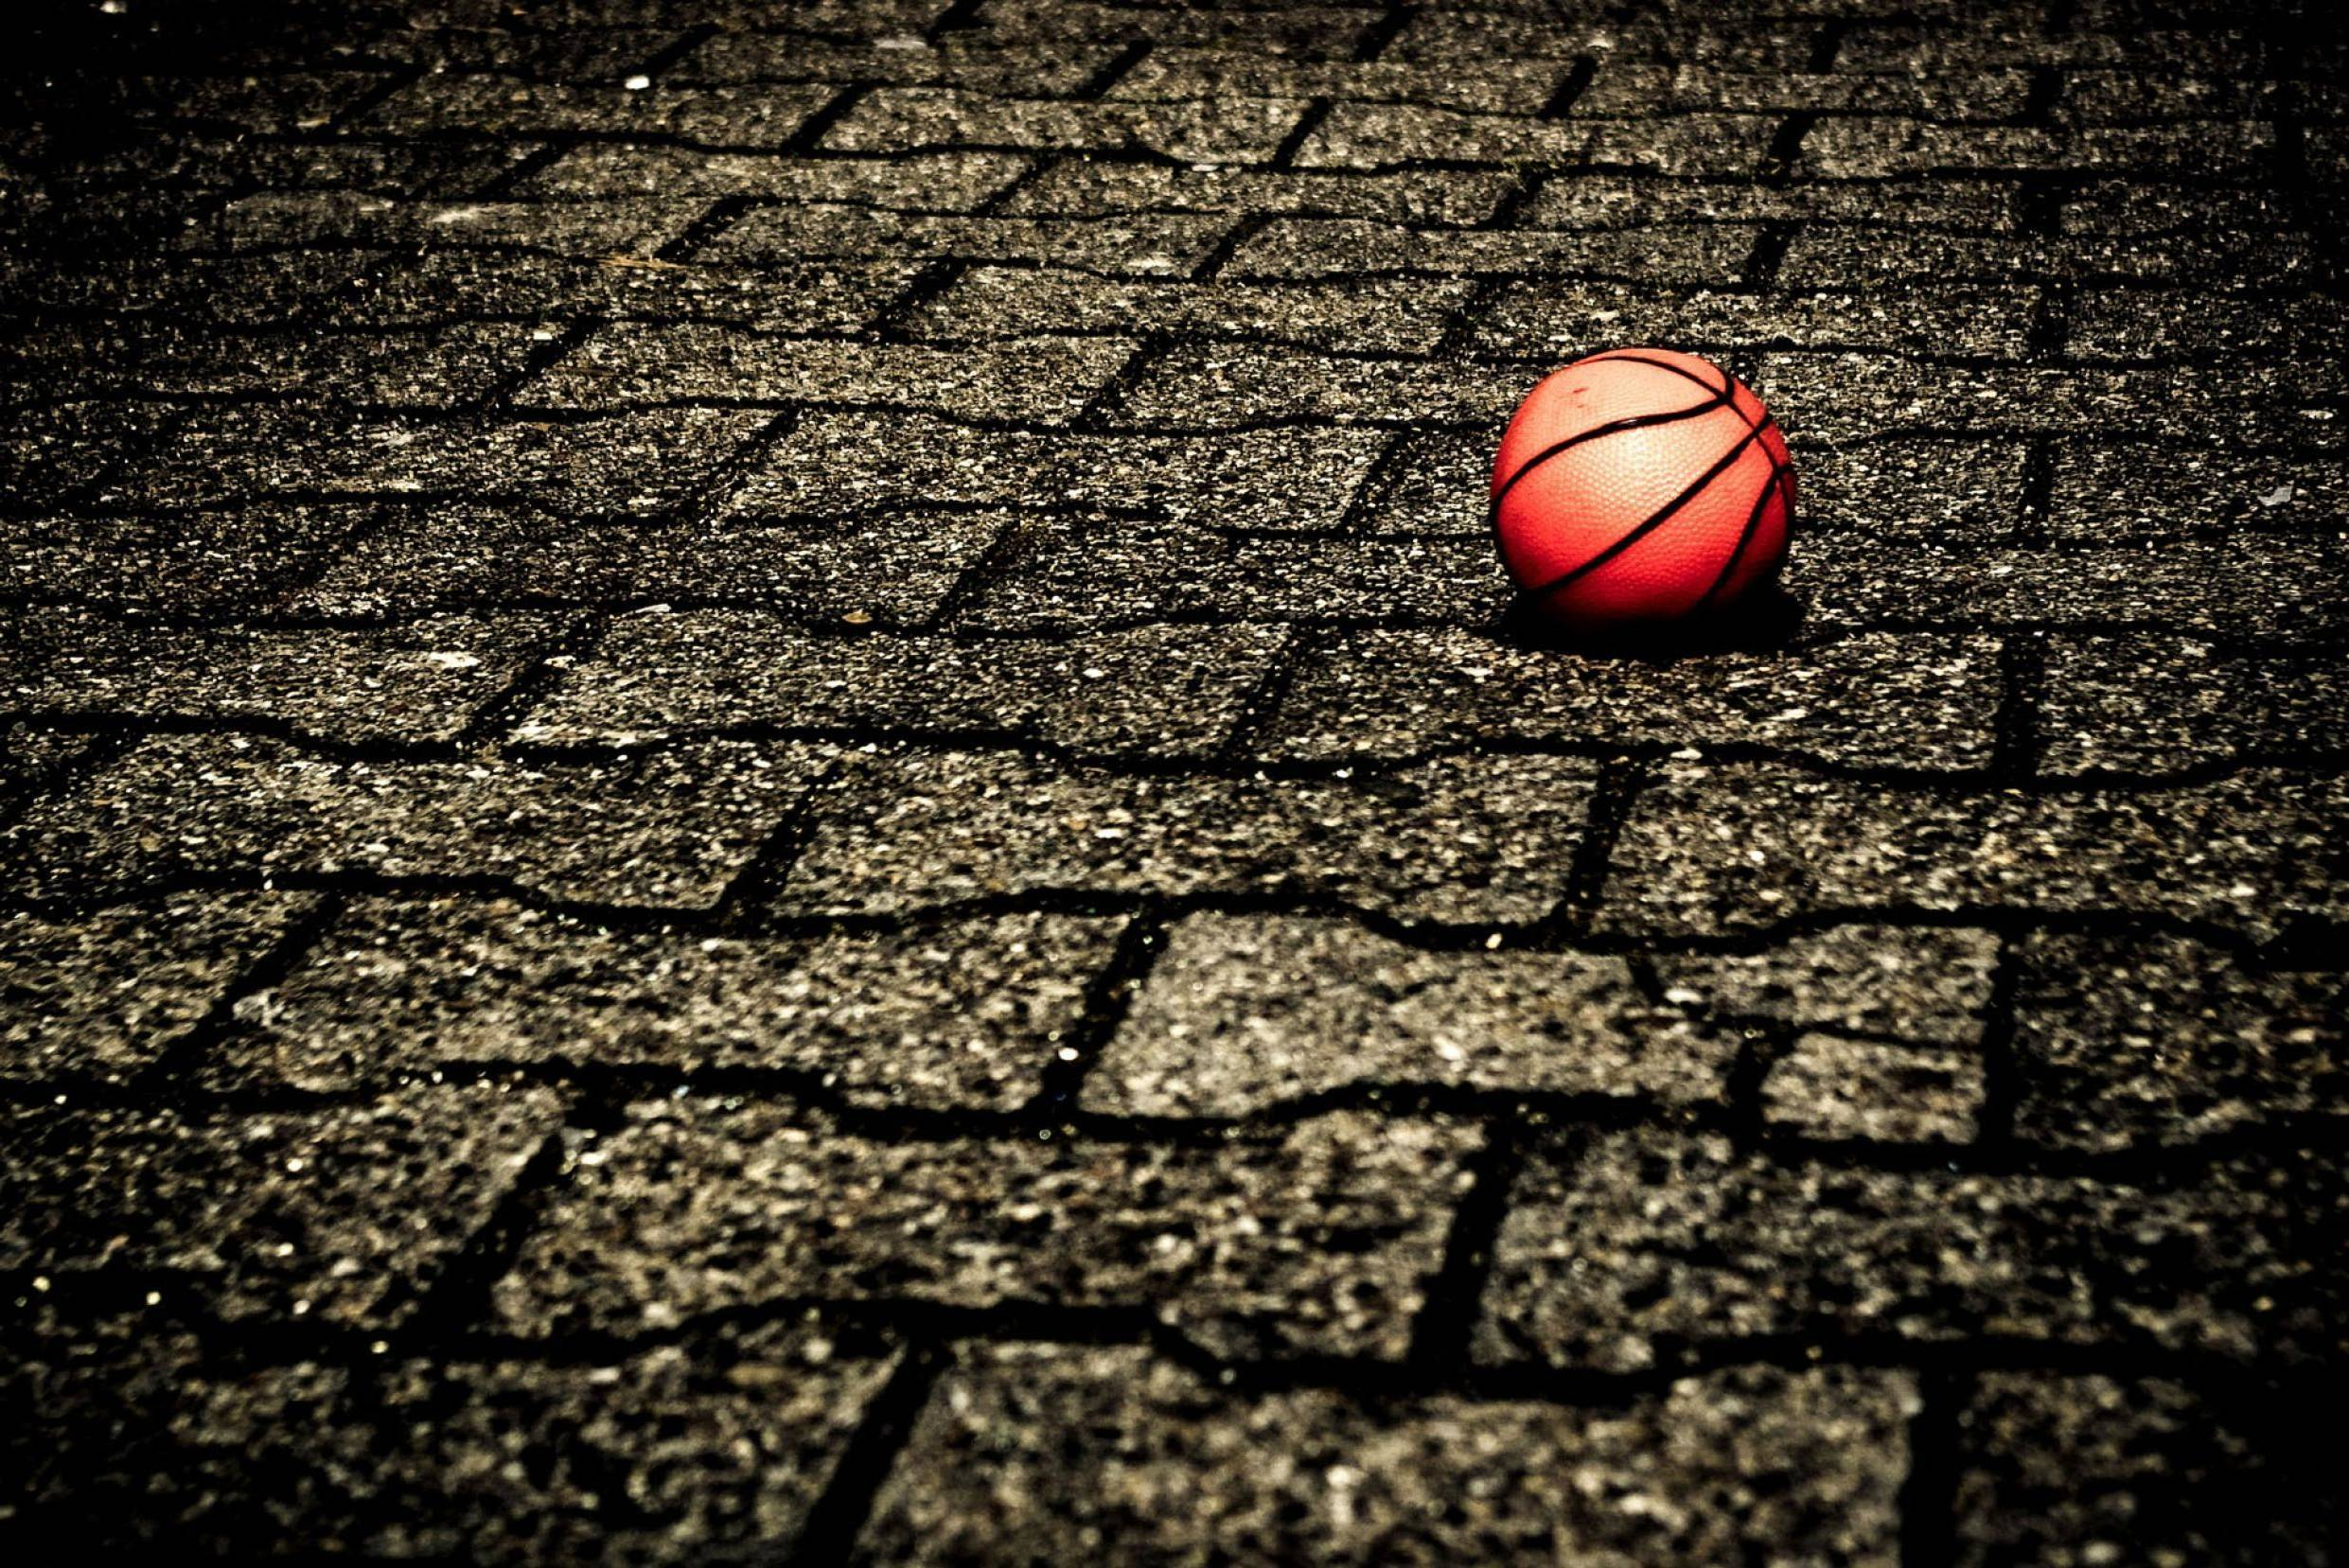 2560x1920 sports wallpaper - photo #31